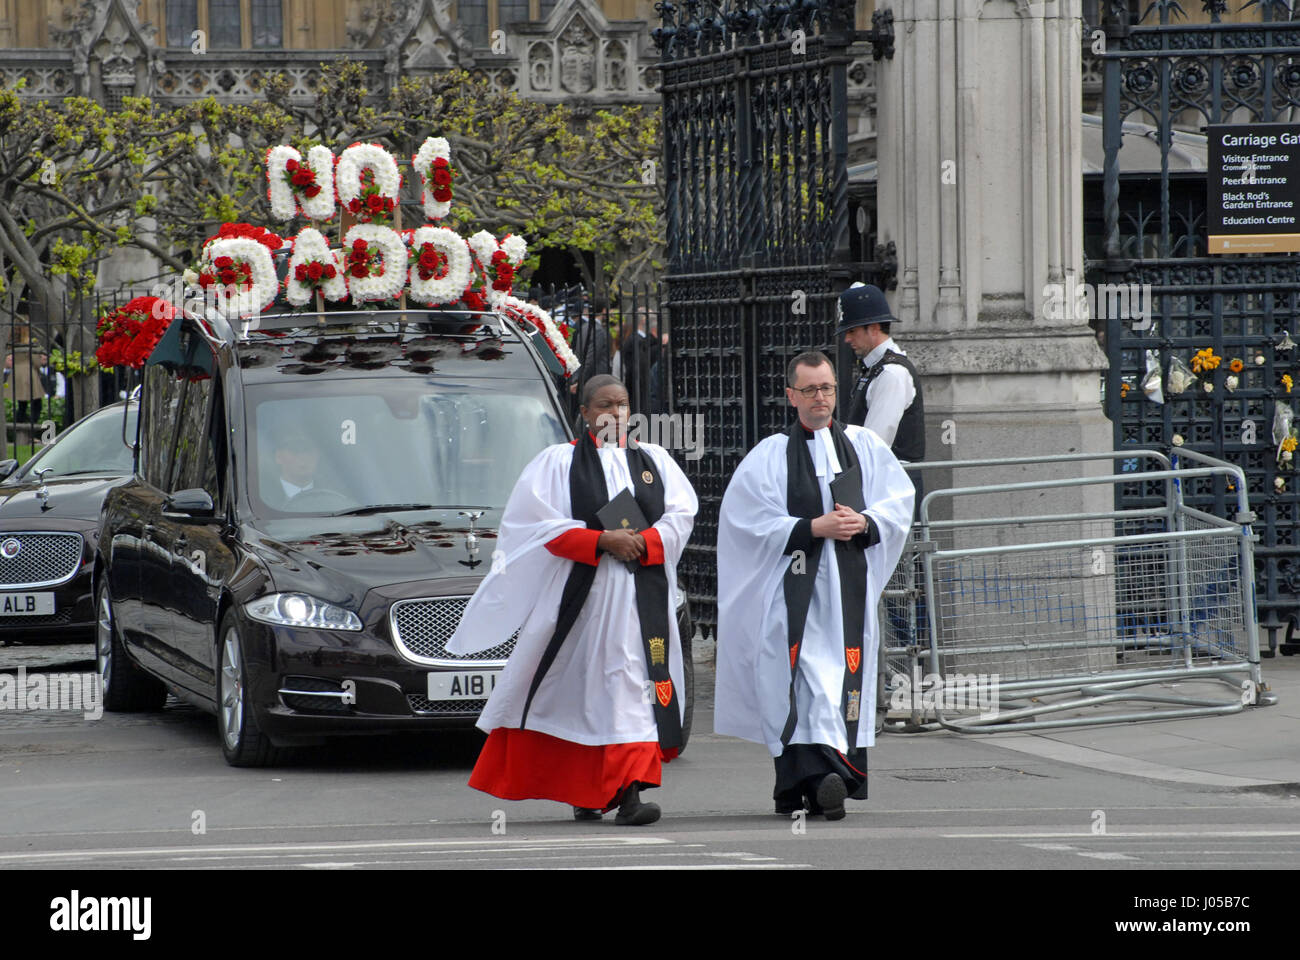 London, UK. 10th Apr, 2017. Reverend Prebendary Rose Hudson-Wilkin leads the hearse through the gates.The coffin - Stock Image